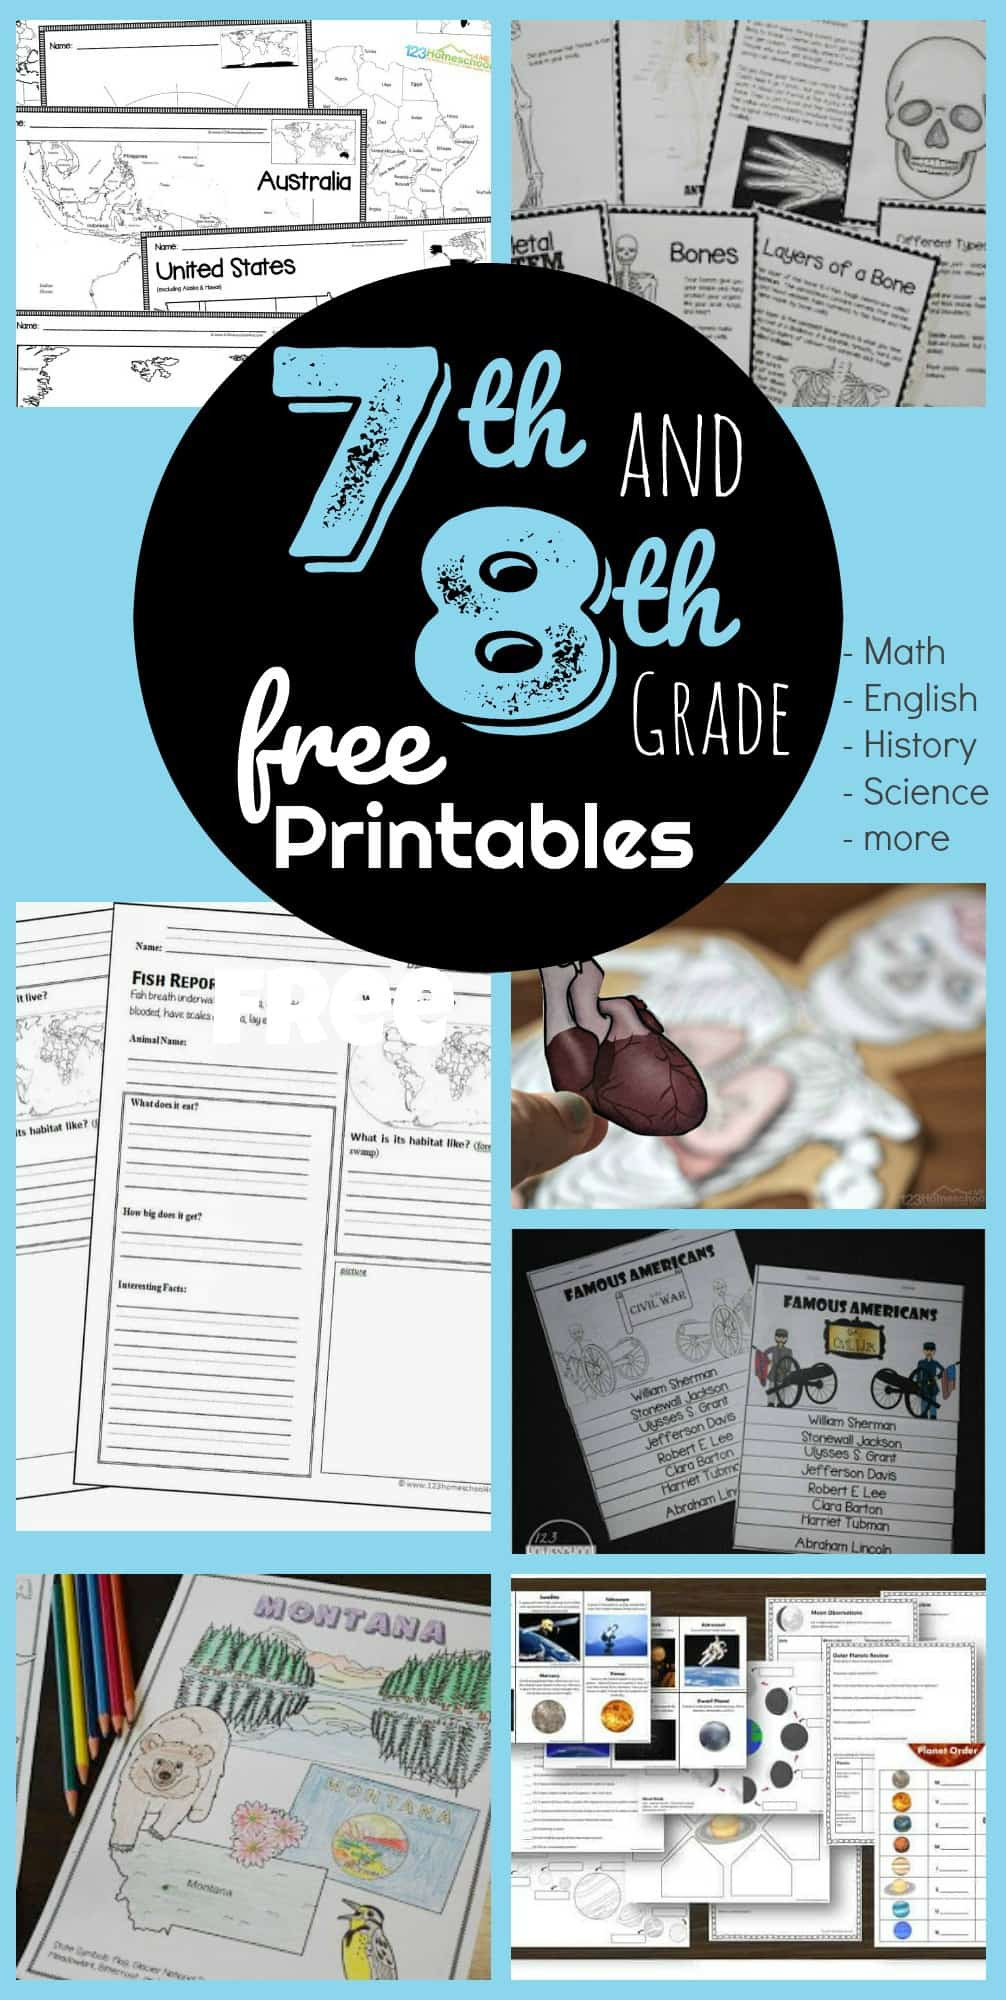 Science Worksheets for 8th Grade Free 7th & 8th Grade Worksheets